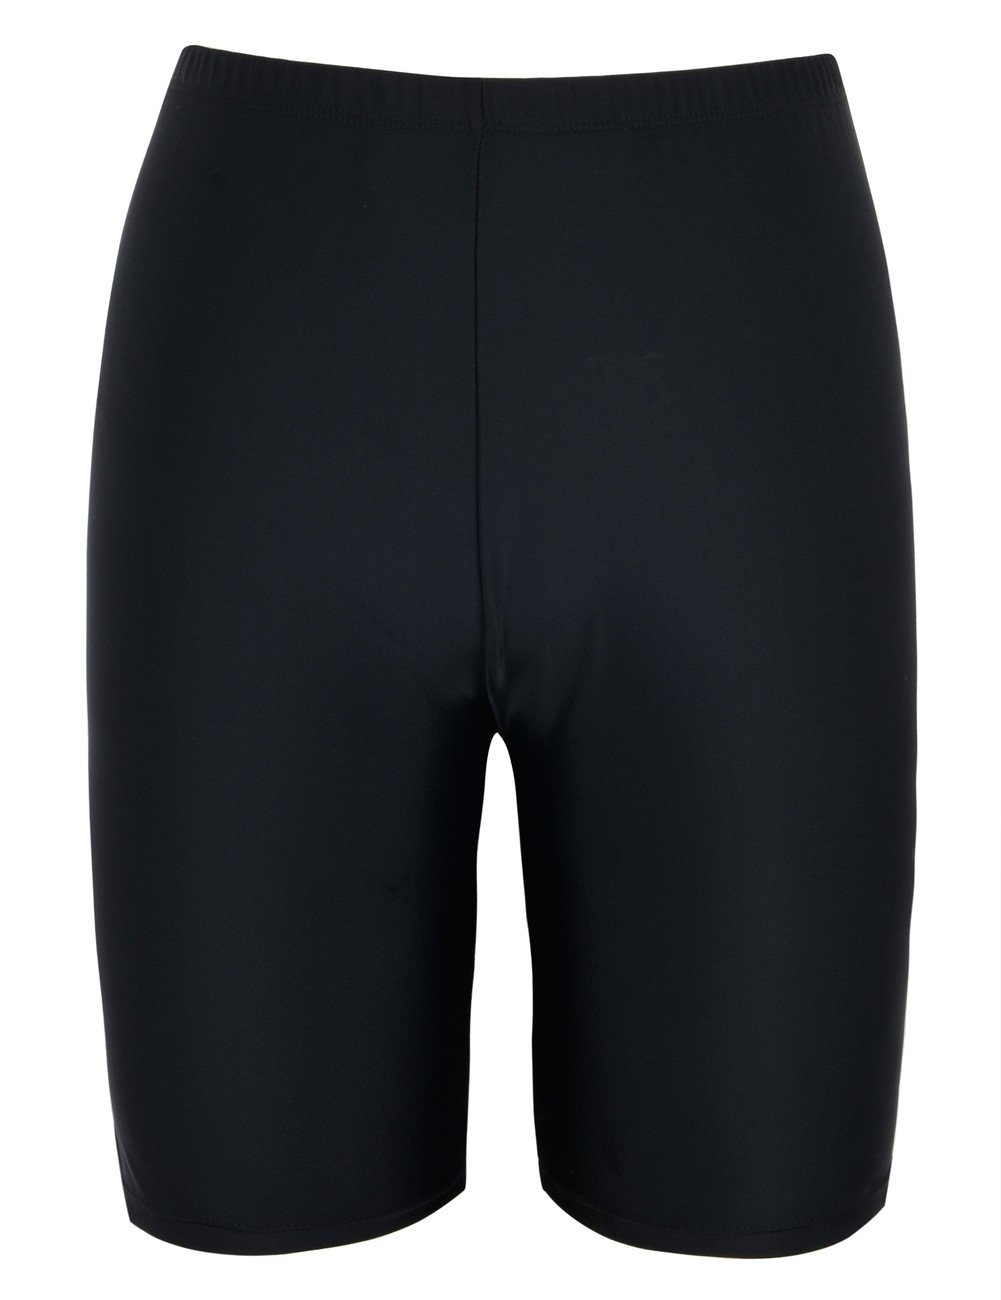 Punctual Womens Pony Dry Wick Shorts Activewear Clothing, Shoes & Accessories